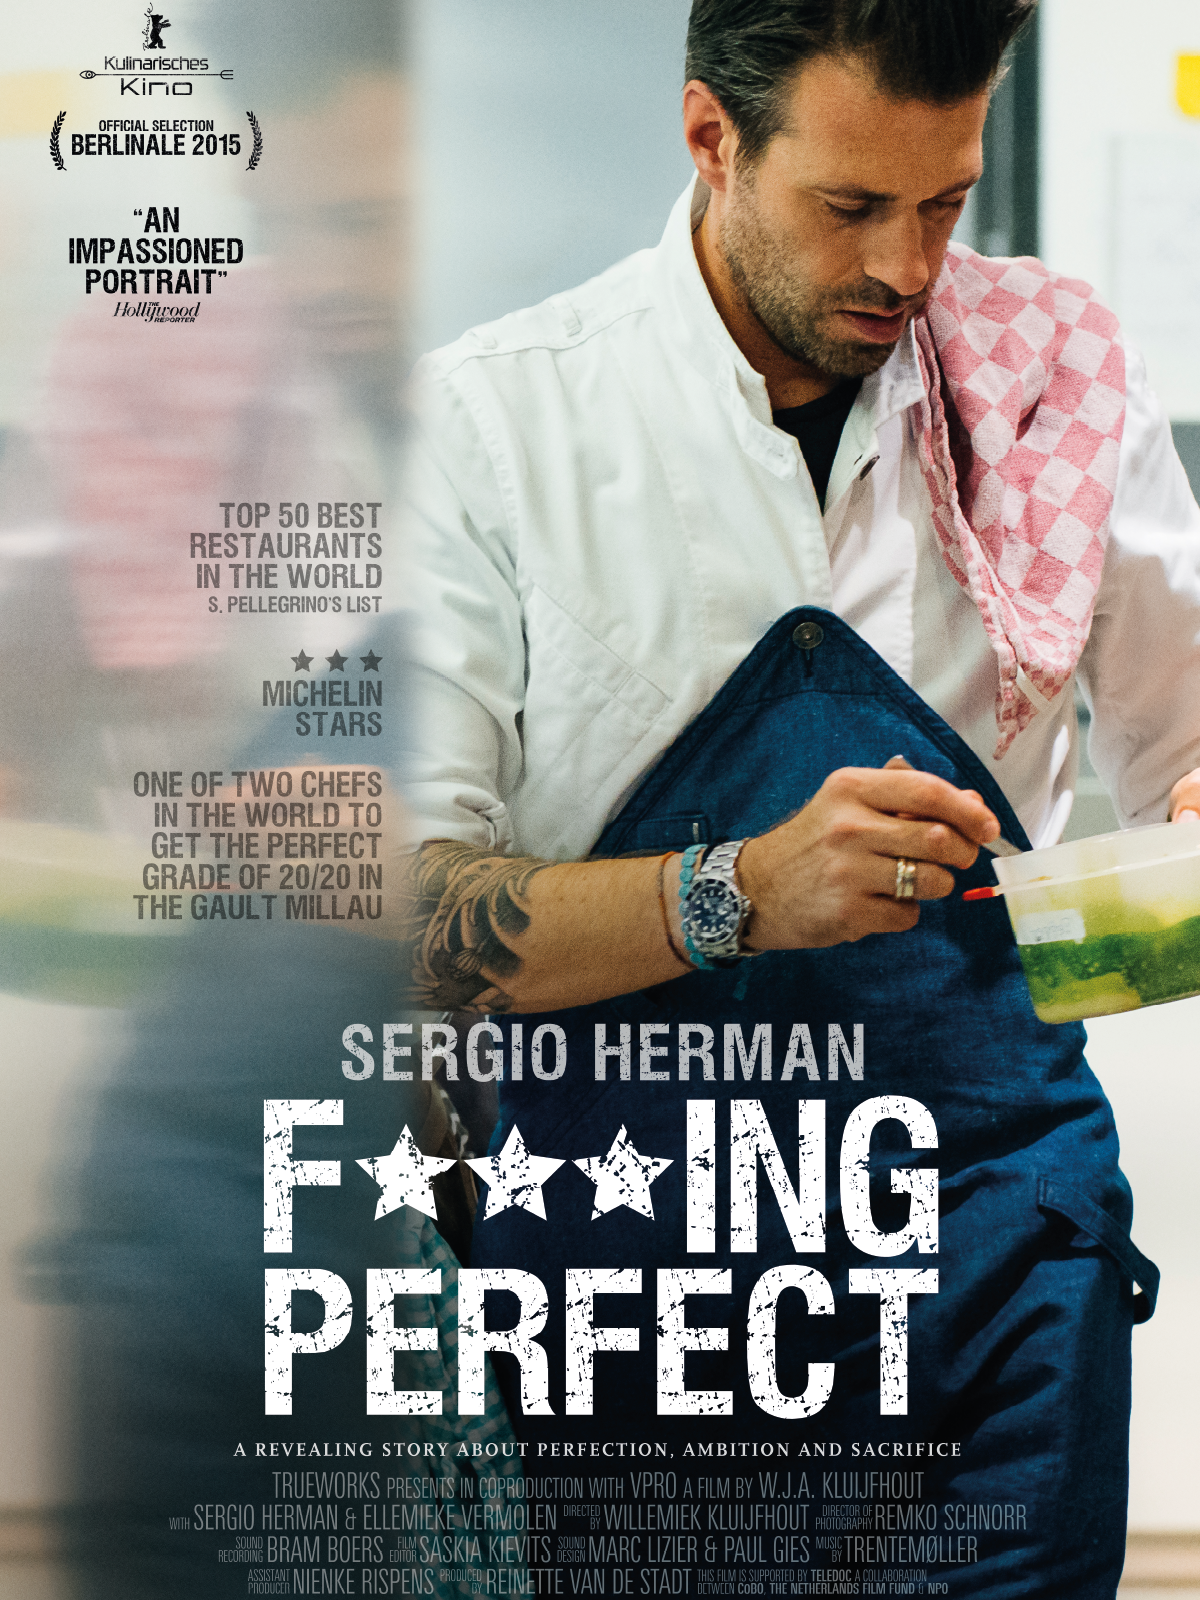 SERGIO HERMAN FUCKING PERFECT 1200X1600 ARTWORK AMAZON